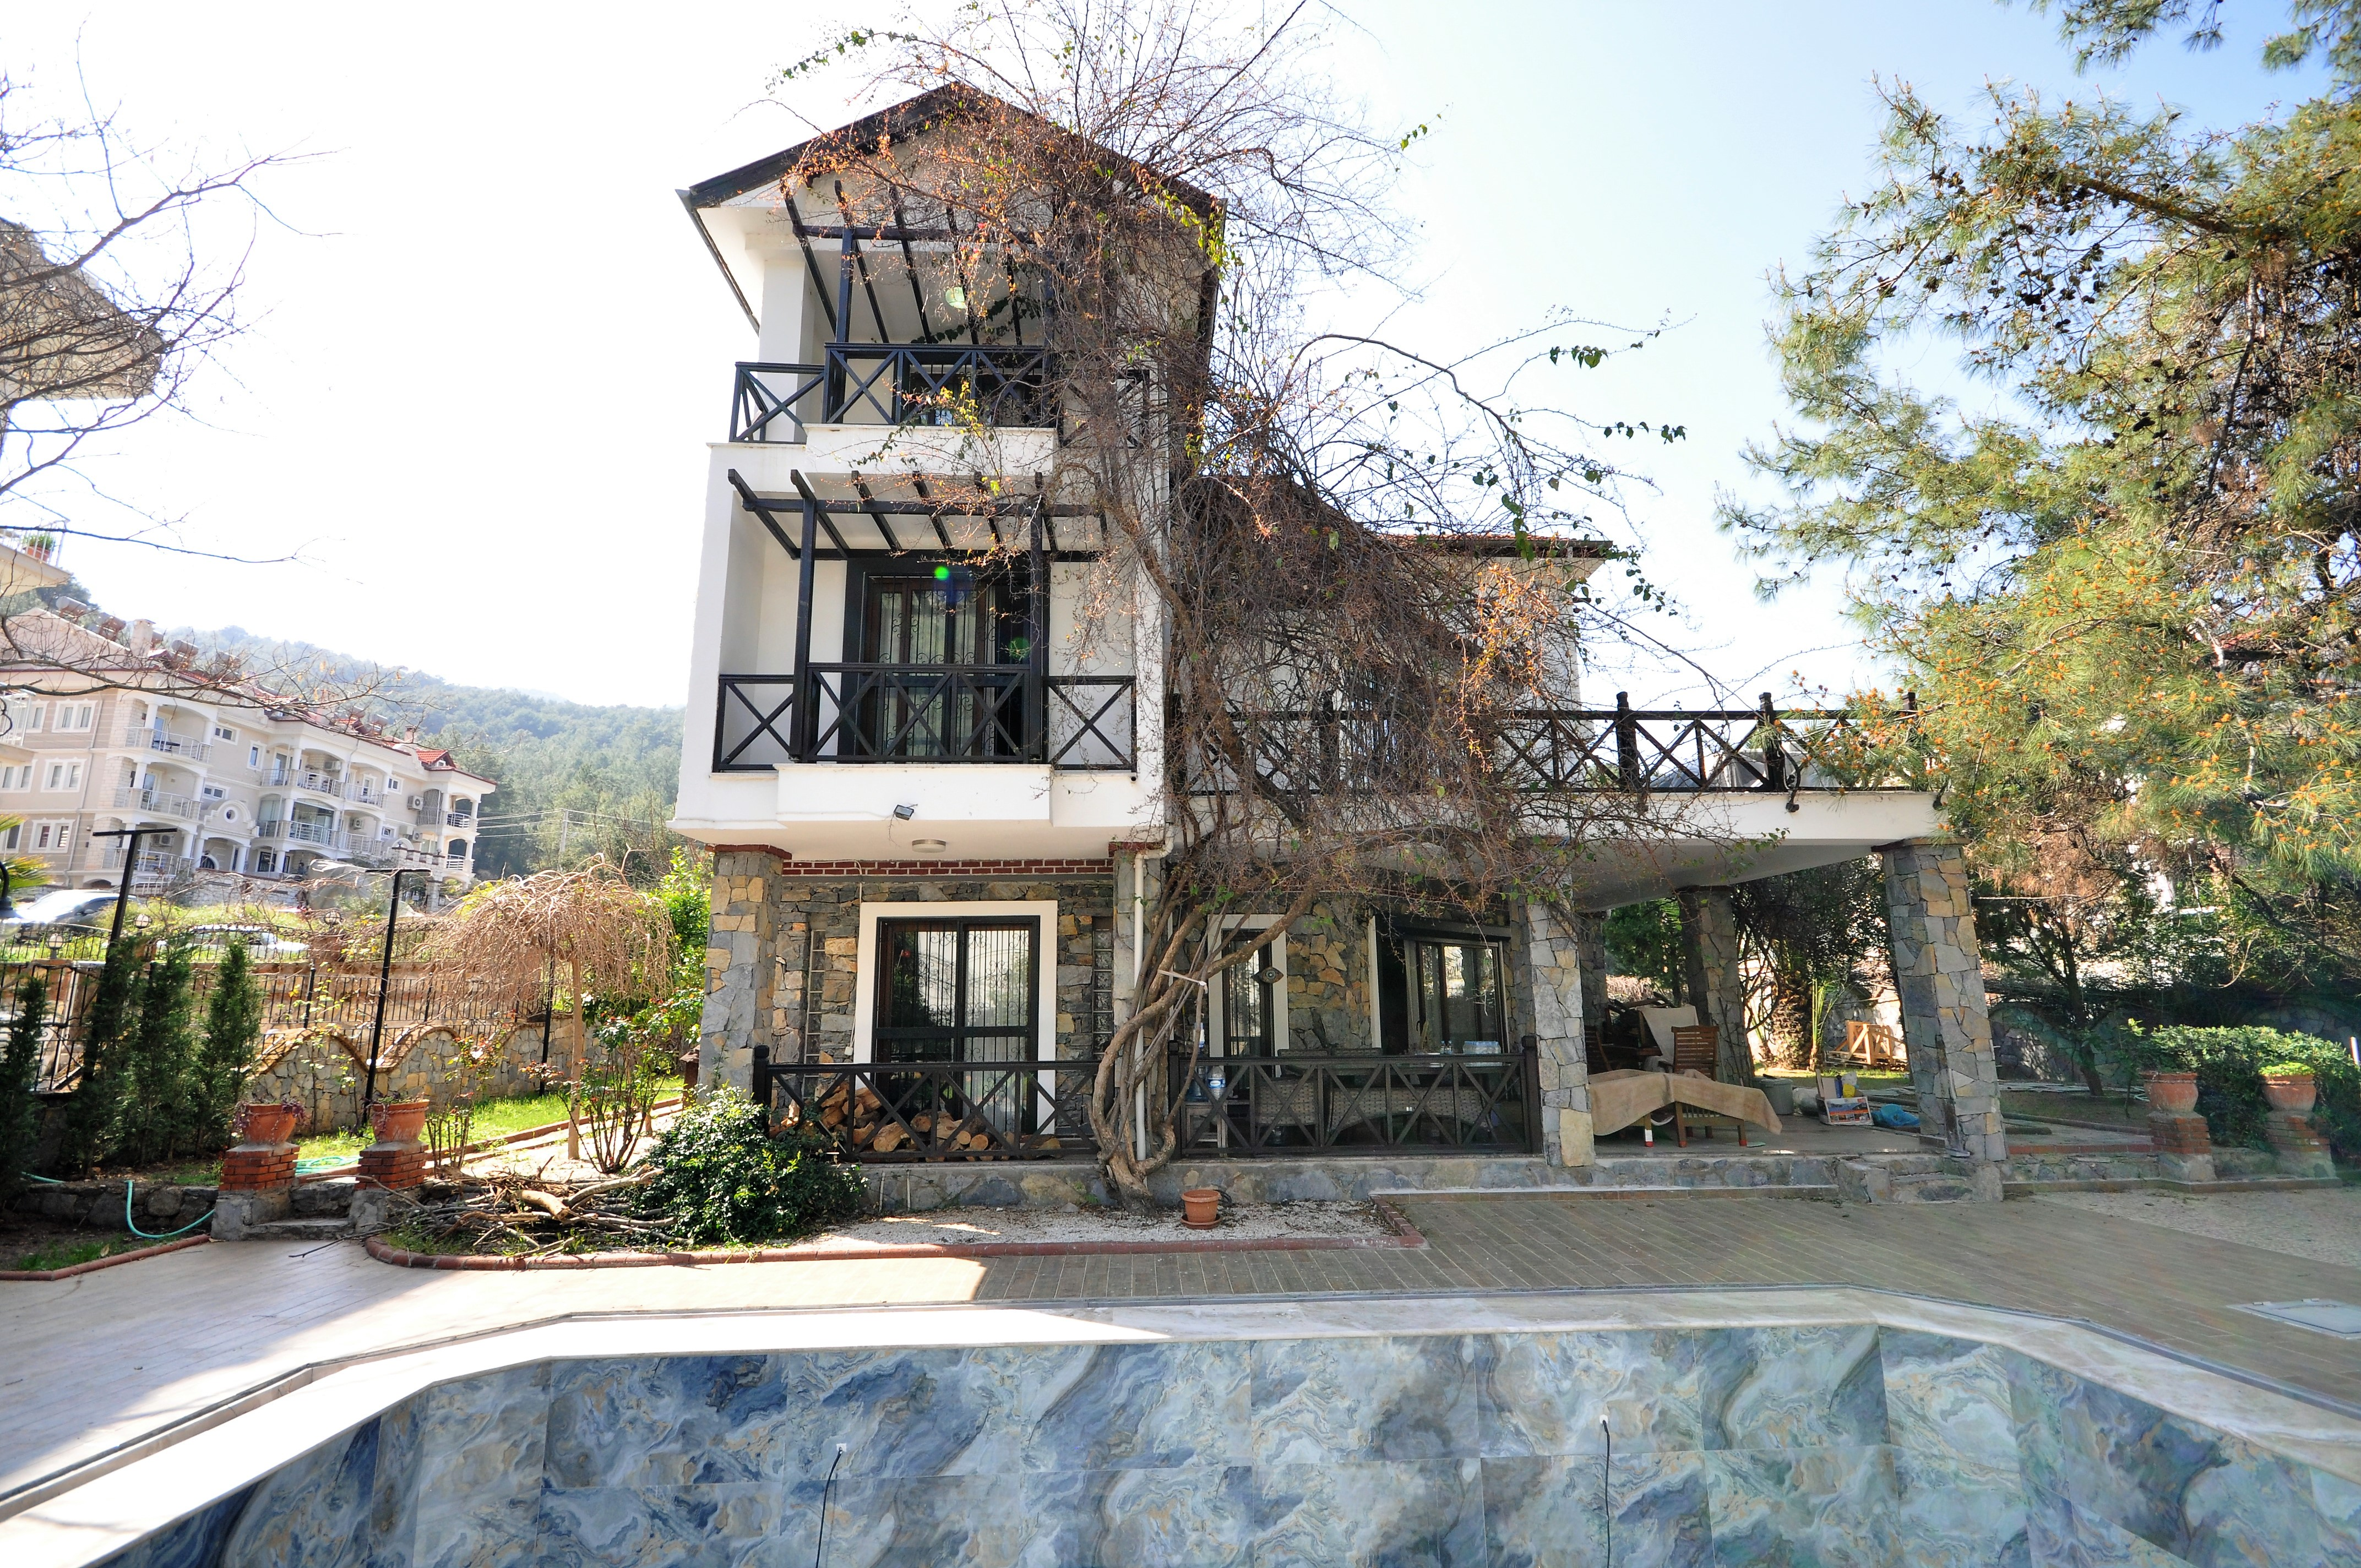 7 Bedroom Detached Triplex Villa with Private Swimming Pool For Sale